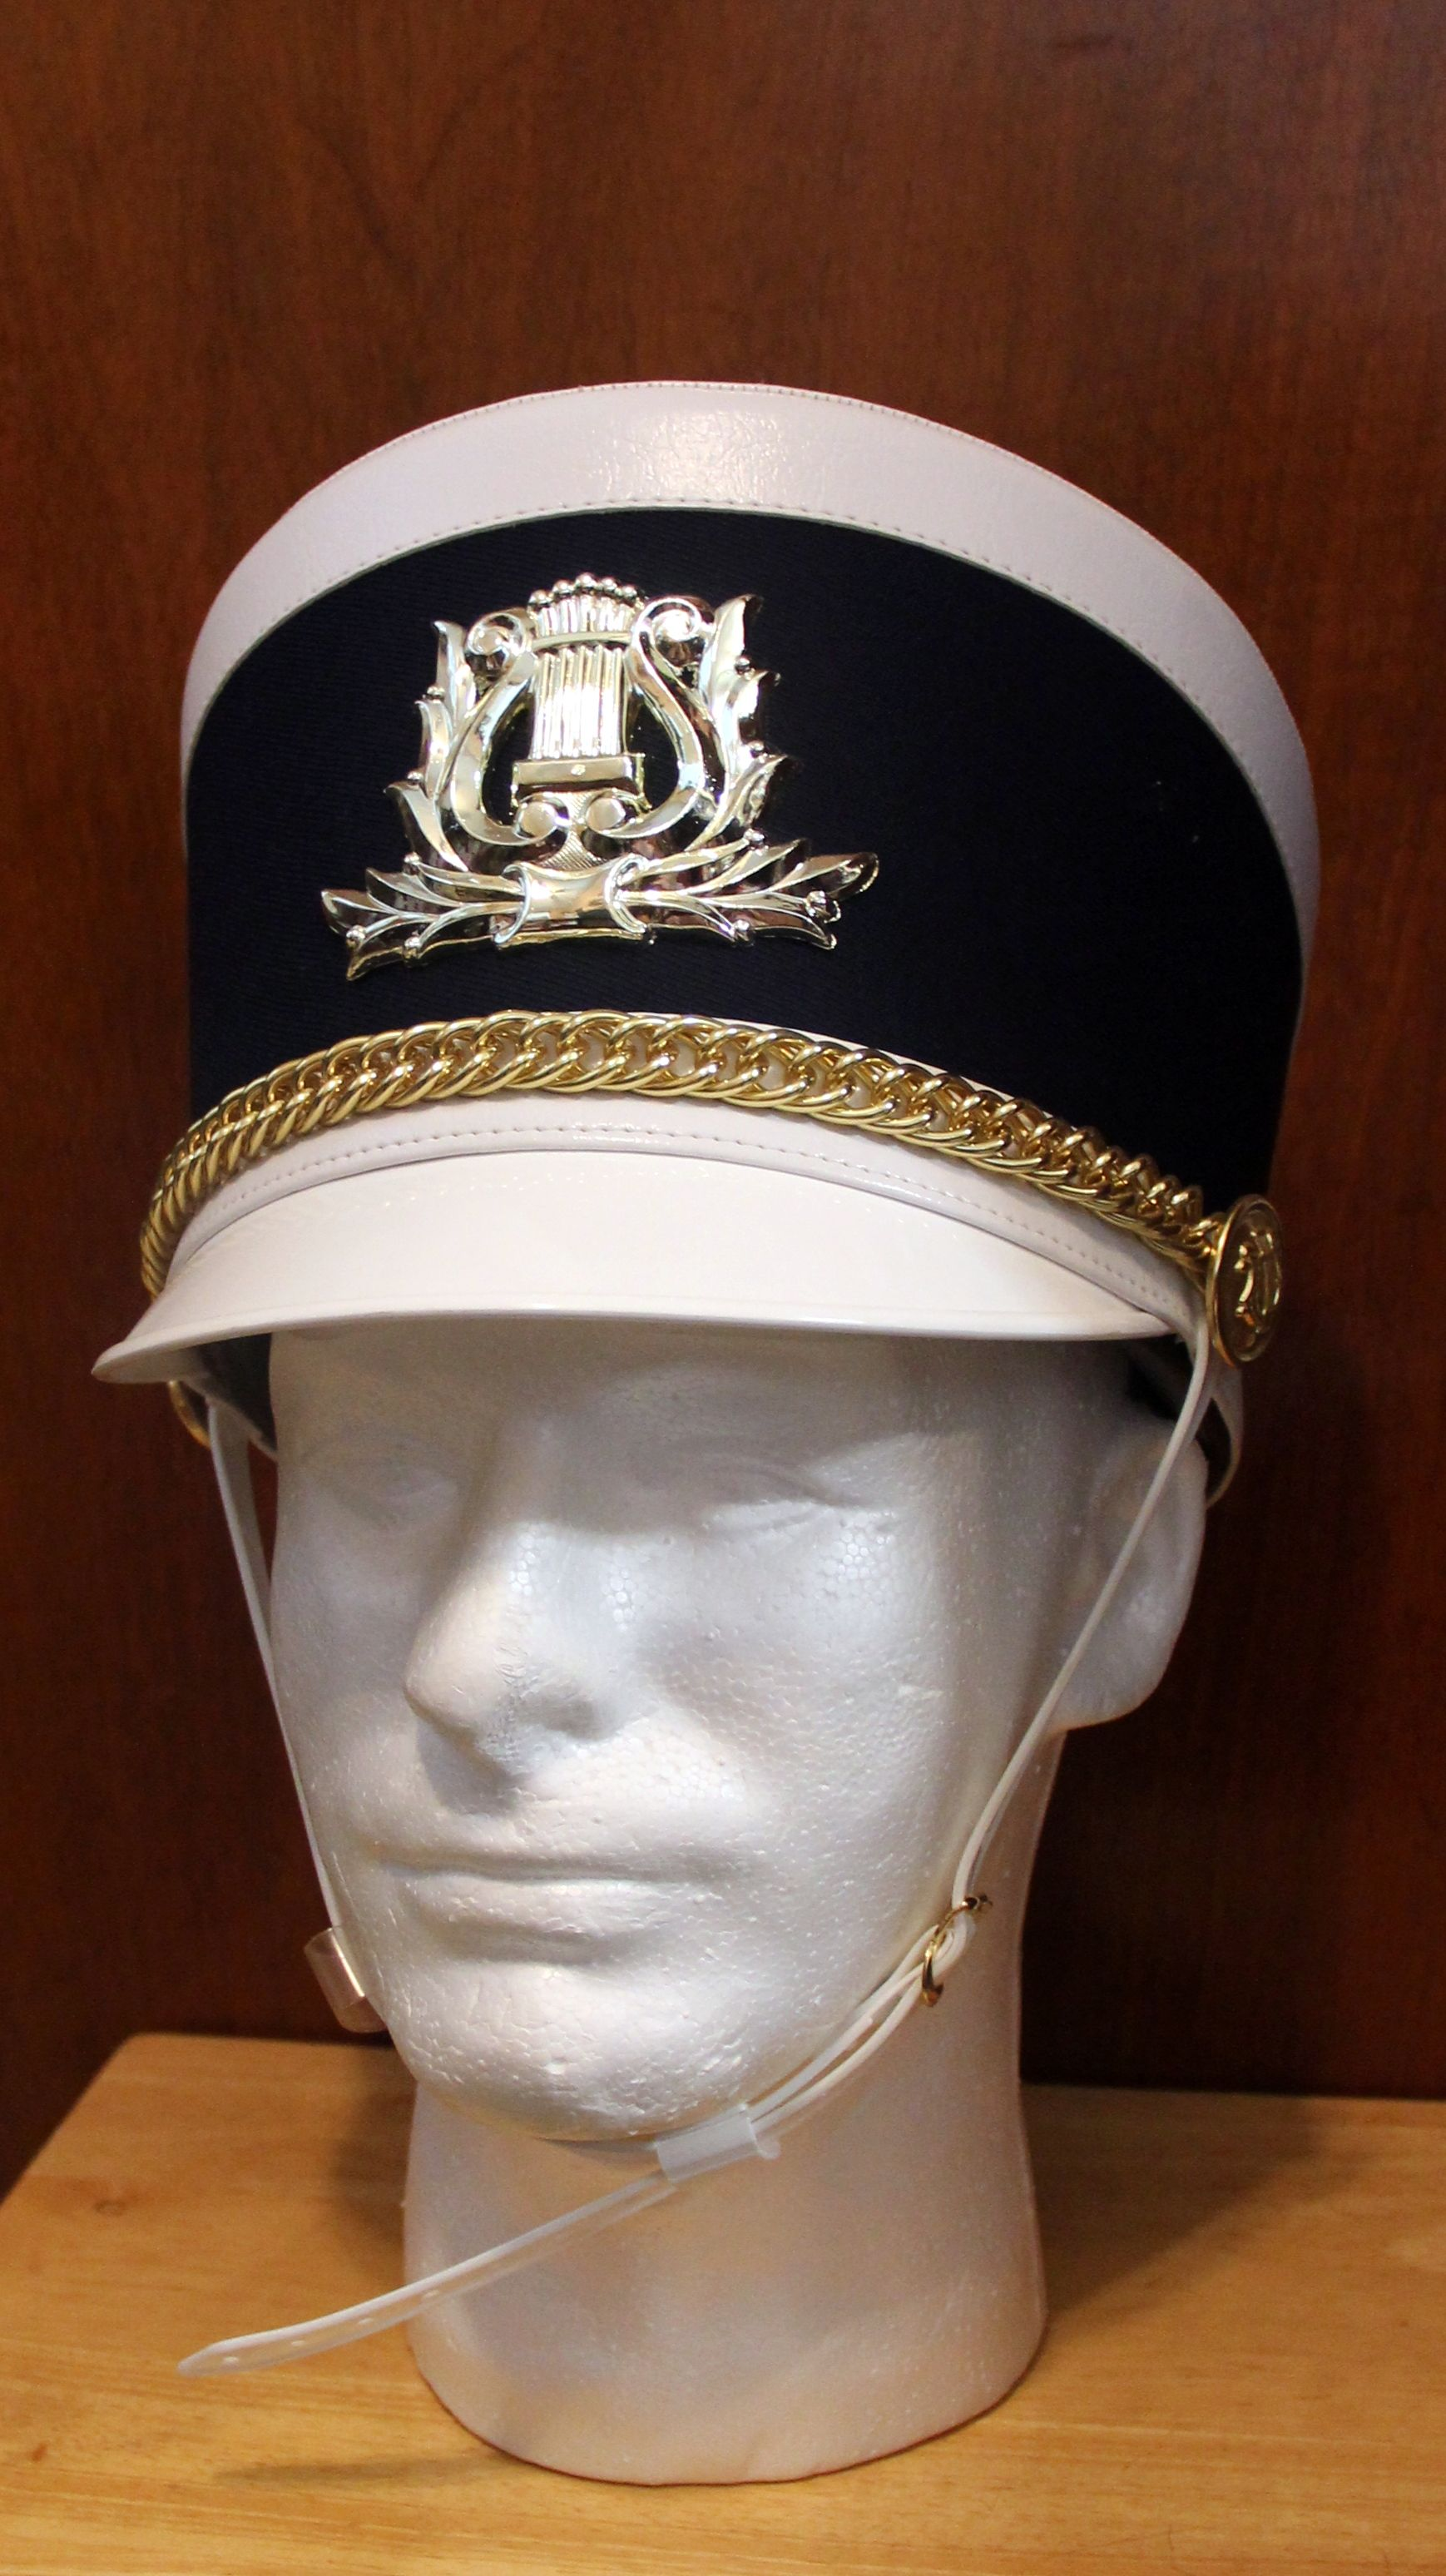 aecedbcaf4d Magnolia s Used Band Uniforms is a reliable source for used band ...